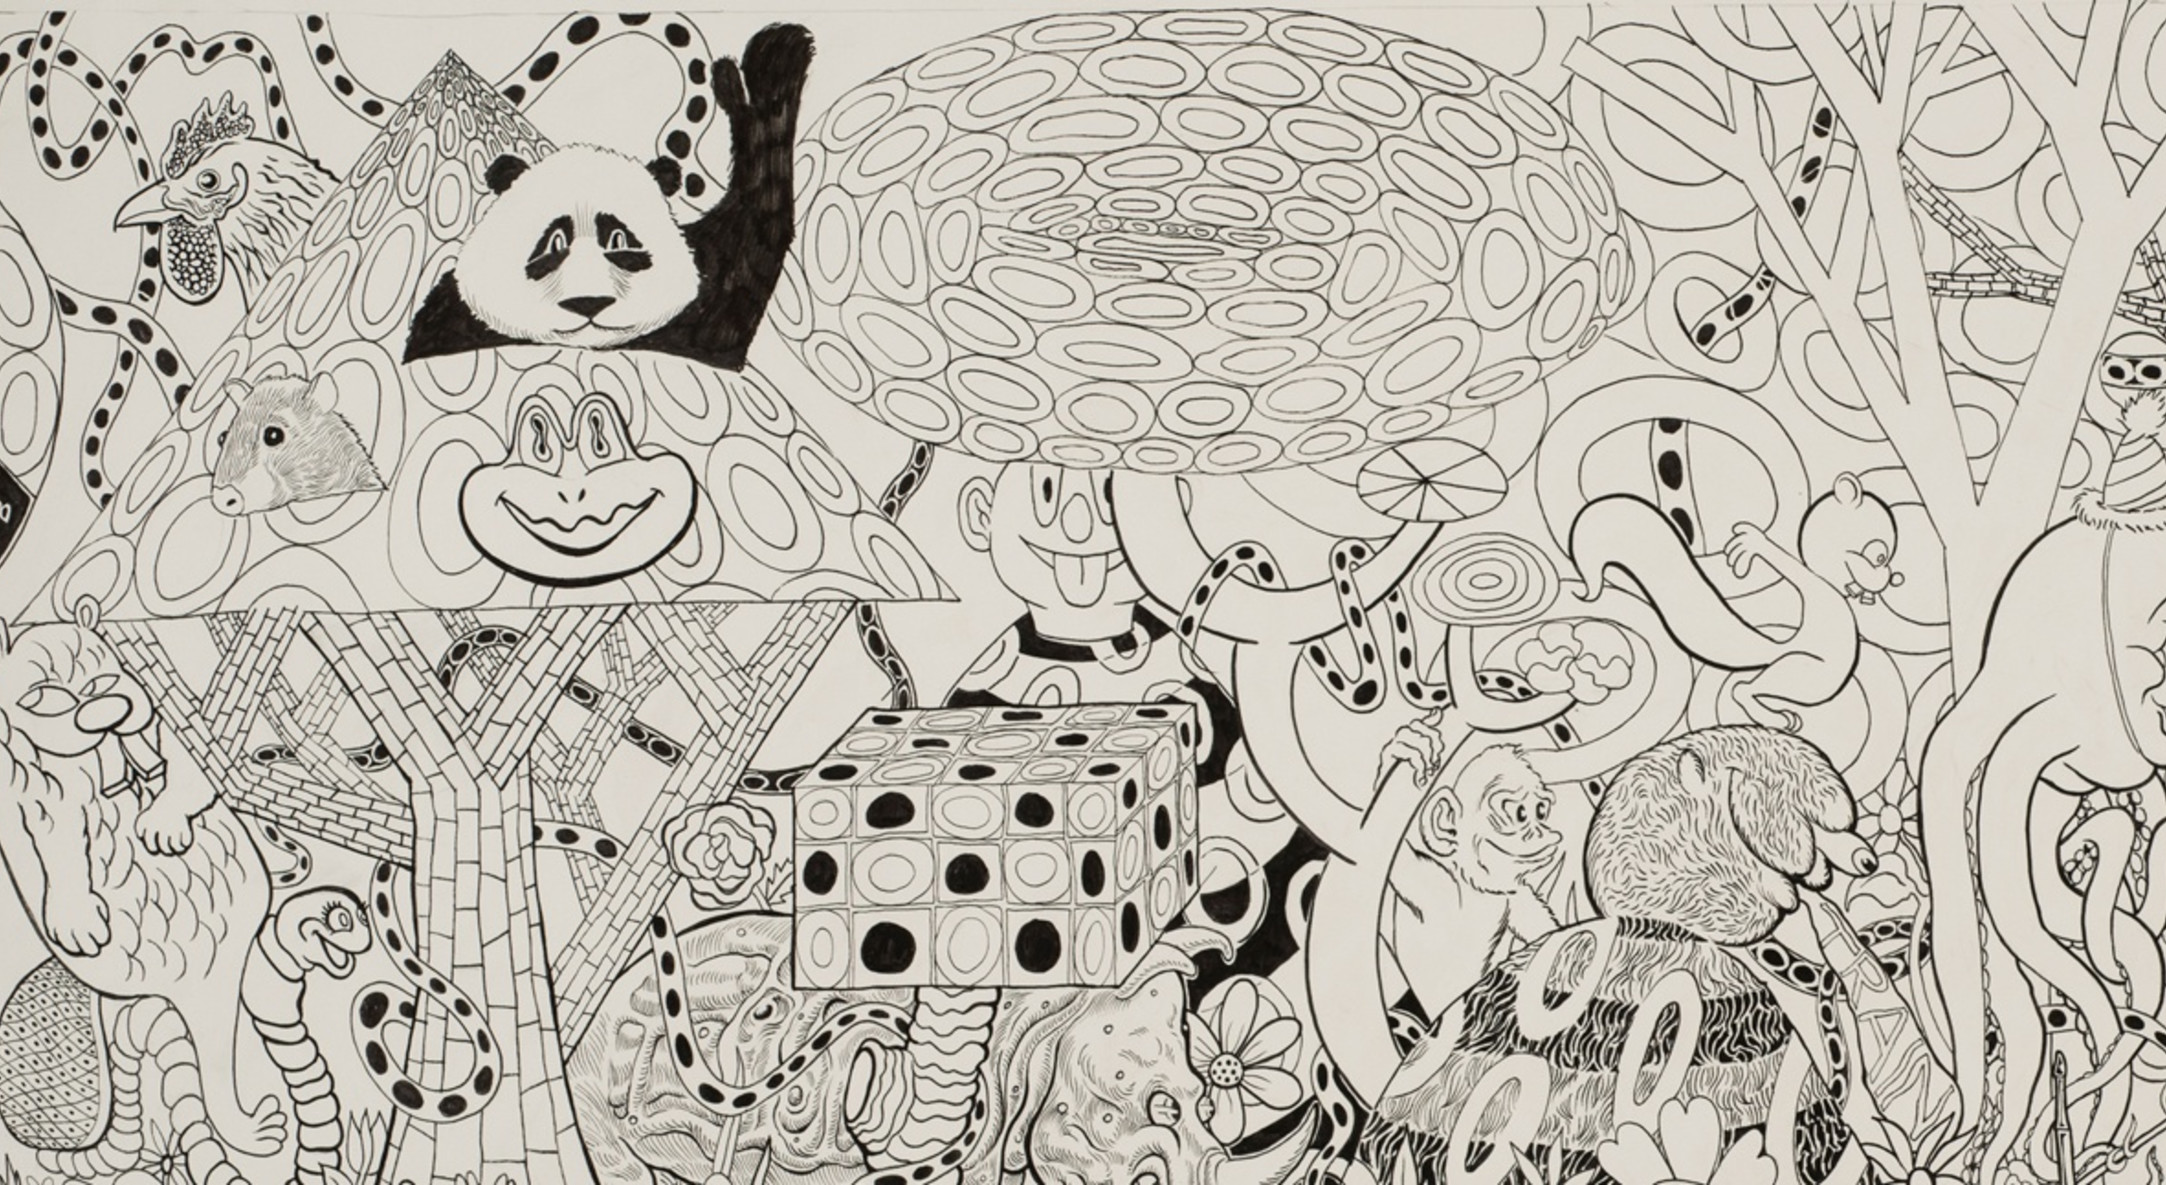 Detail of Trenton Doyle Hancock, Destination Mound Town: Morning, 2013, Ink and graphite on paper, 36.8 x 86.4 cm, 14 1/2 x 34 in